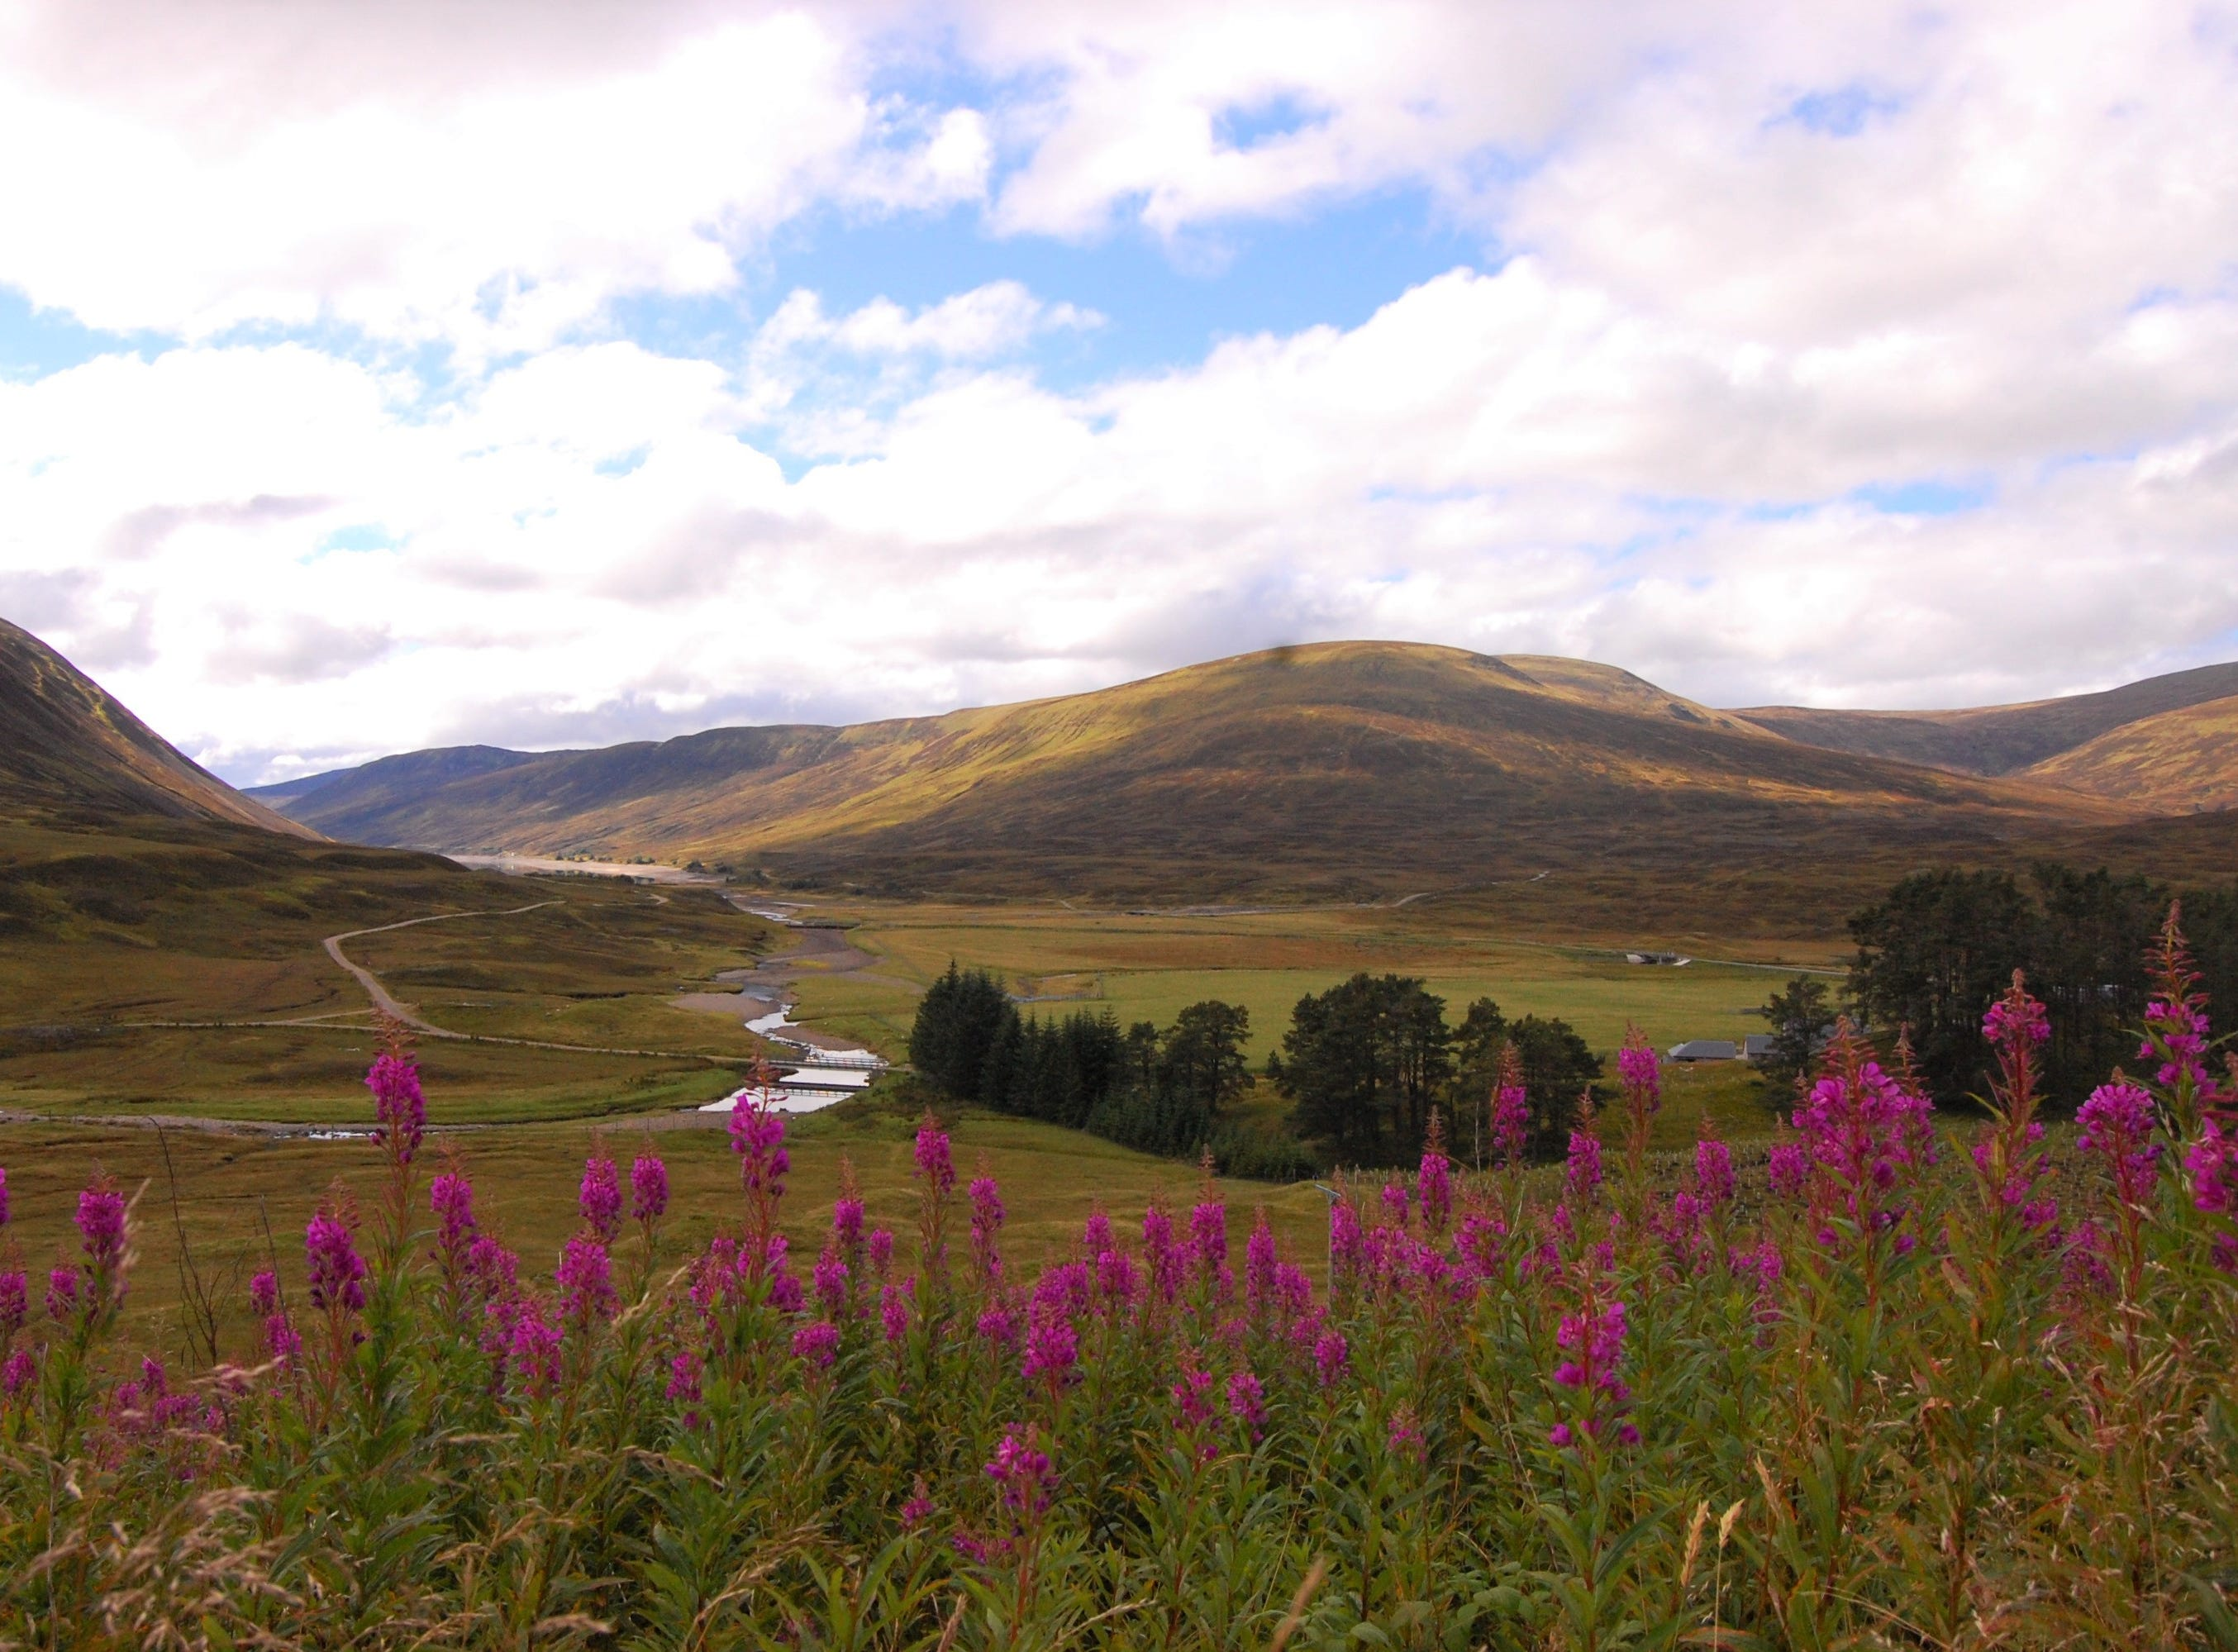 Gorgeous views abound on a road through the Highlands in Scotland. I stopped the car to gawk at the vistas quite often.